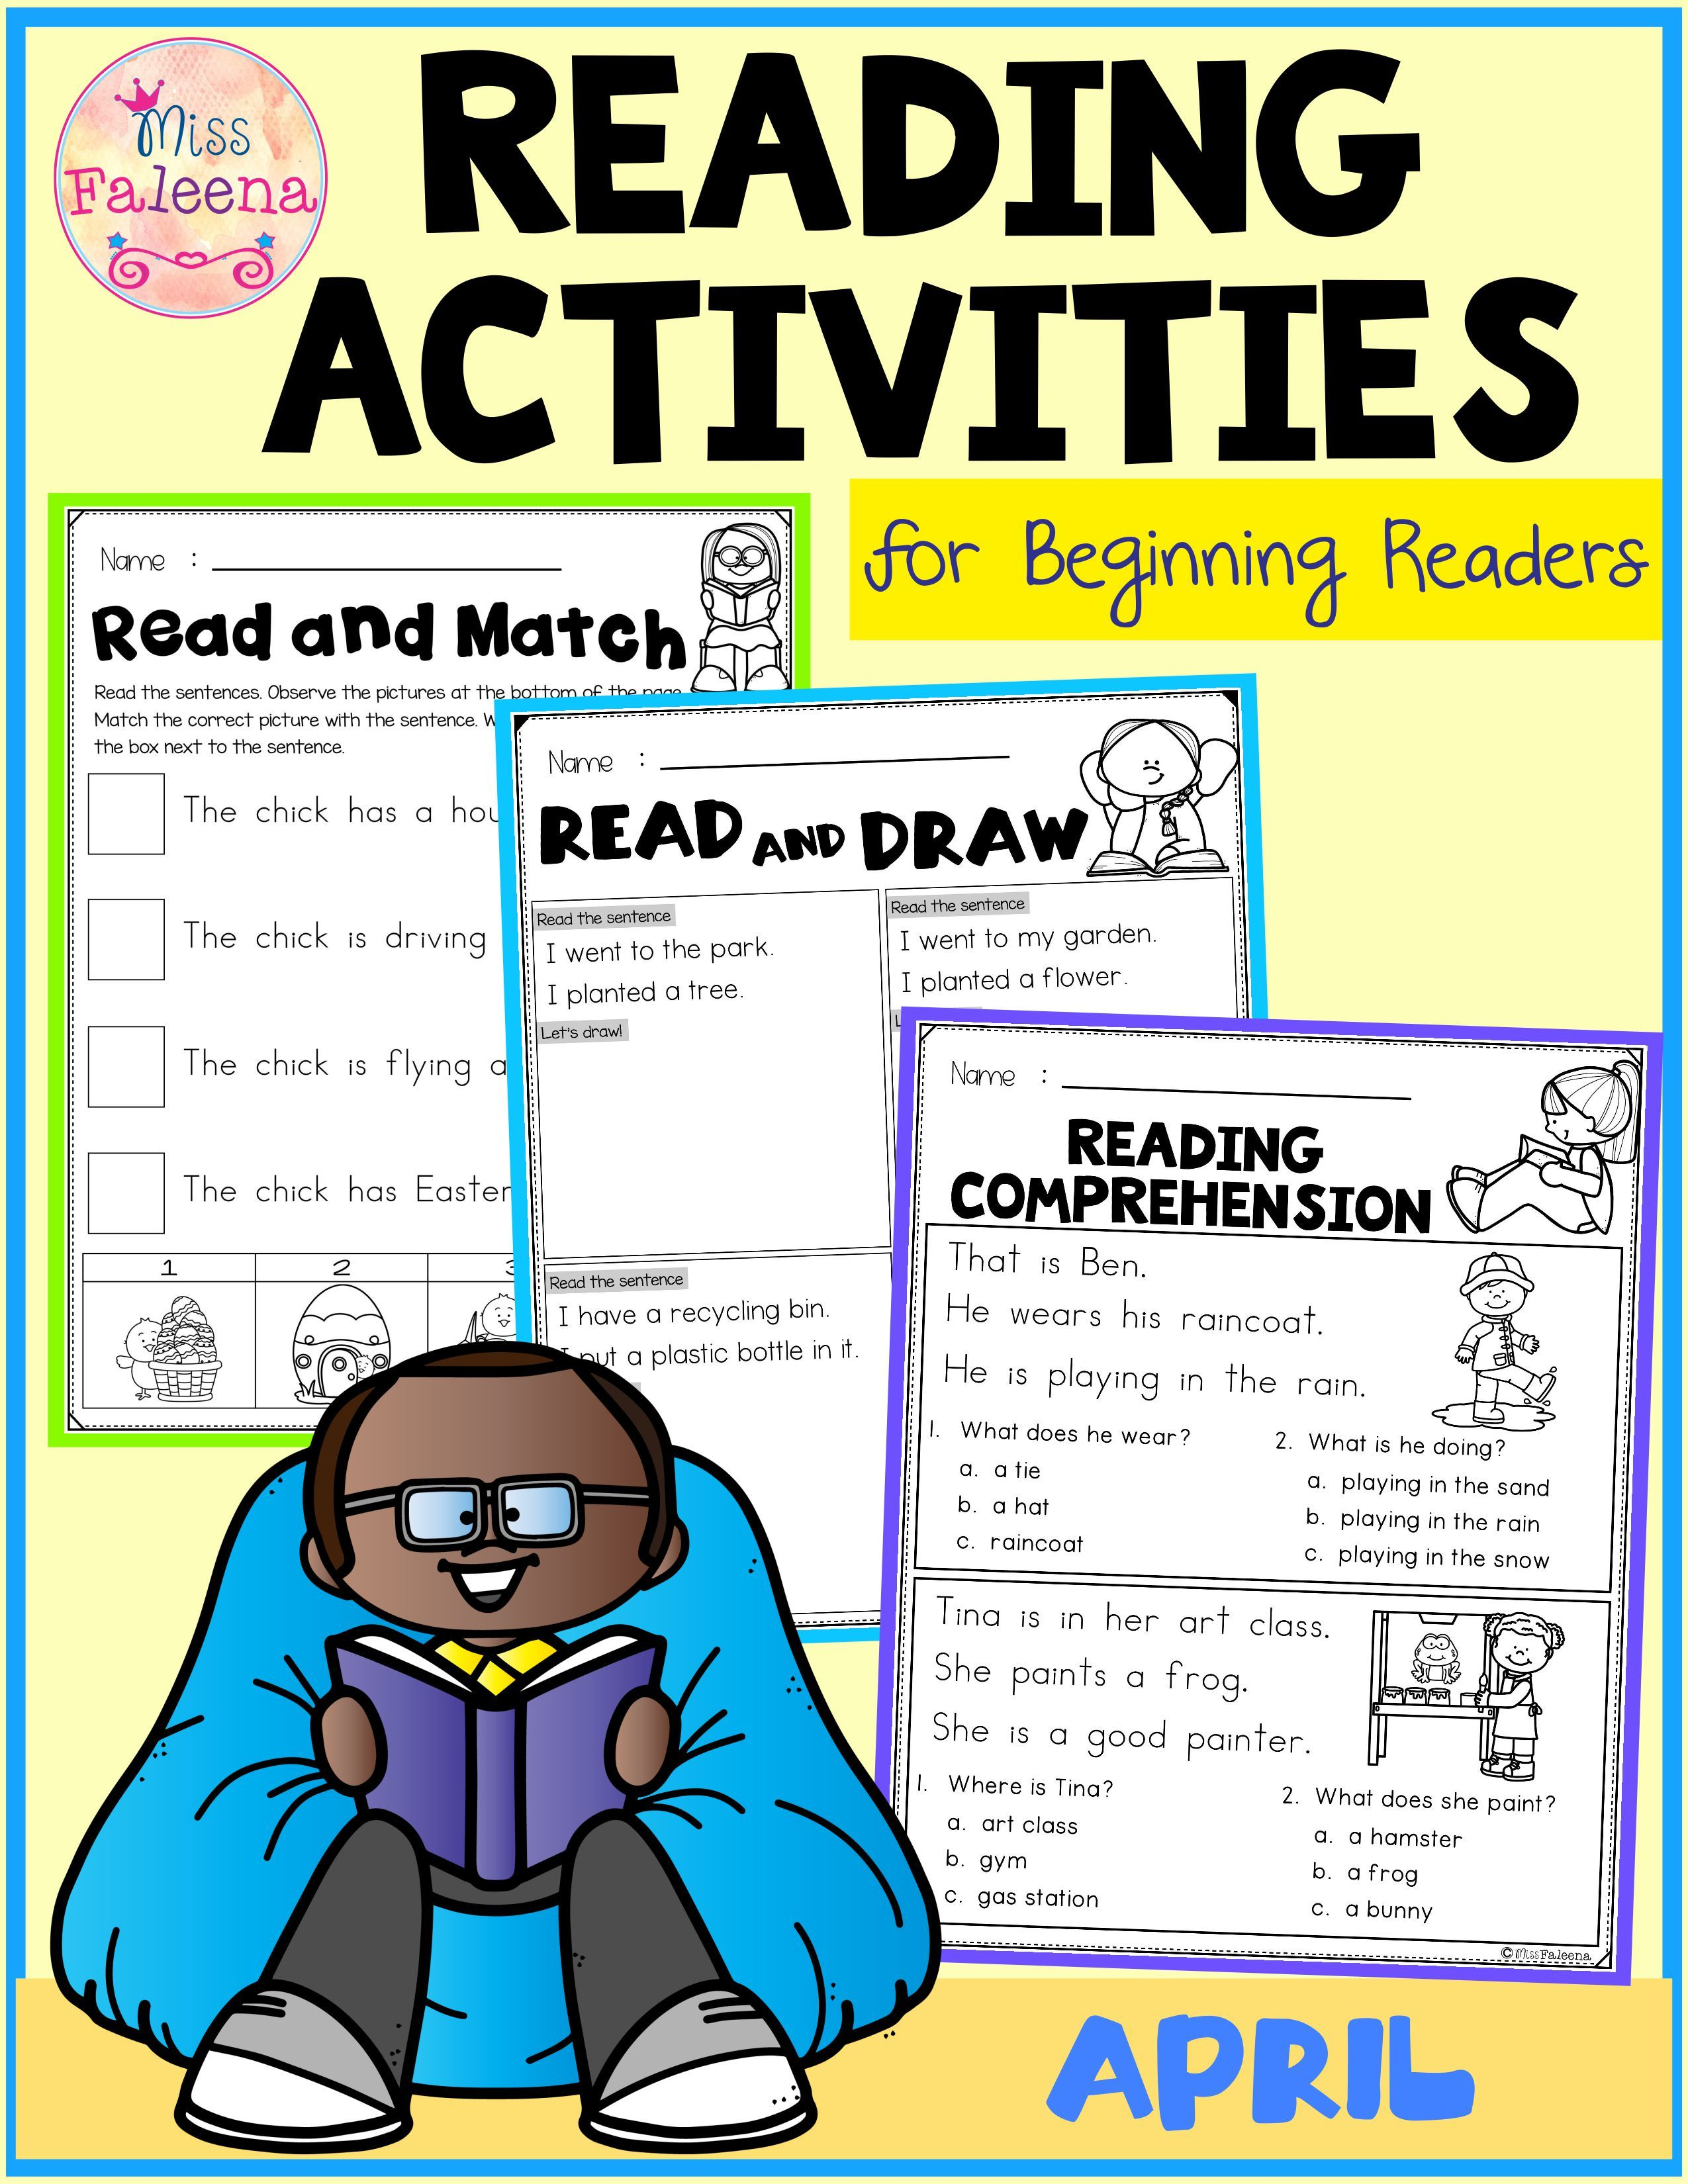 April Reading Activities For Beginning Readers